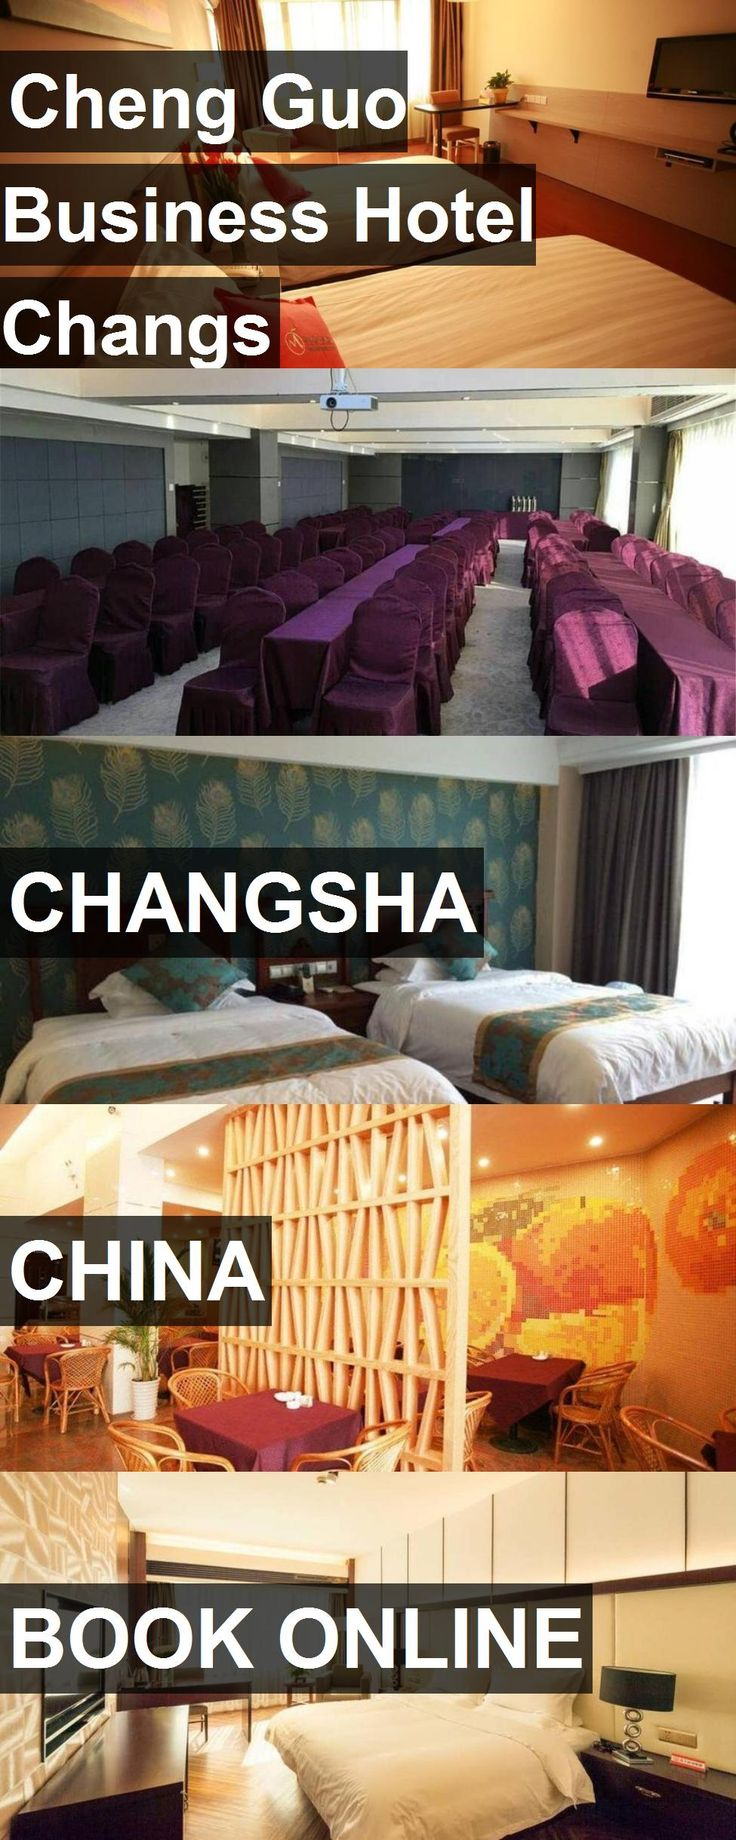 Cheng Guo Business Hotel Changs in Changsha, China. For more information, photos, reviews and best prices please follow the link. #China #Changsha #travel #vacation #hotel